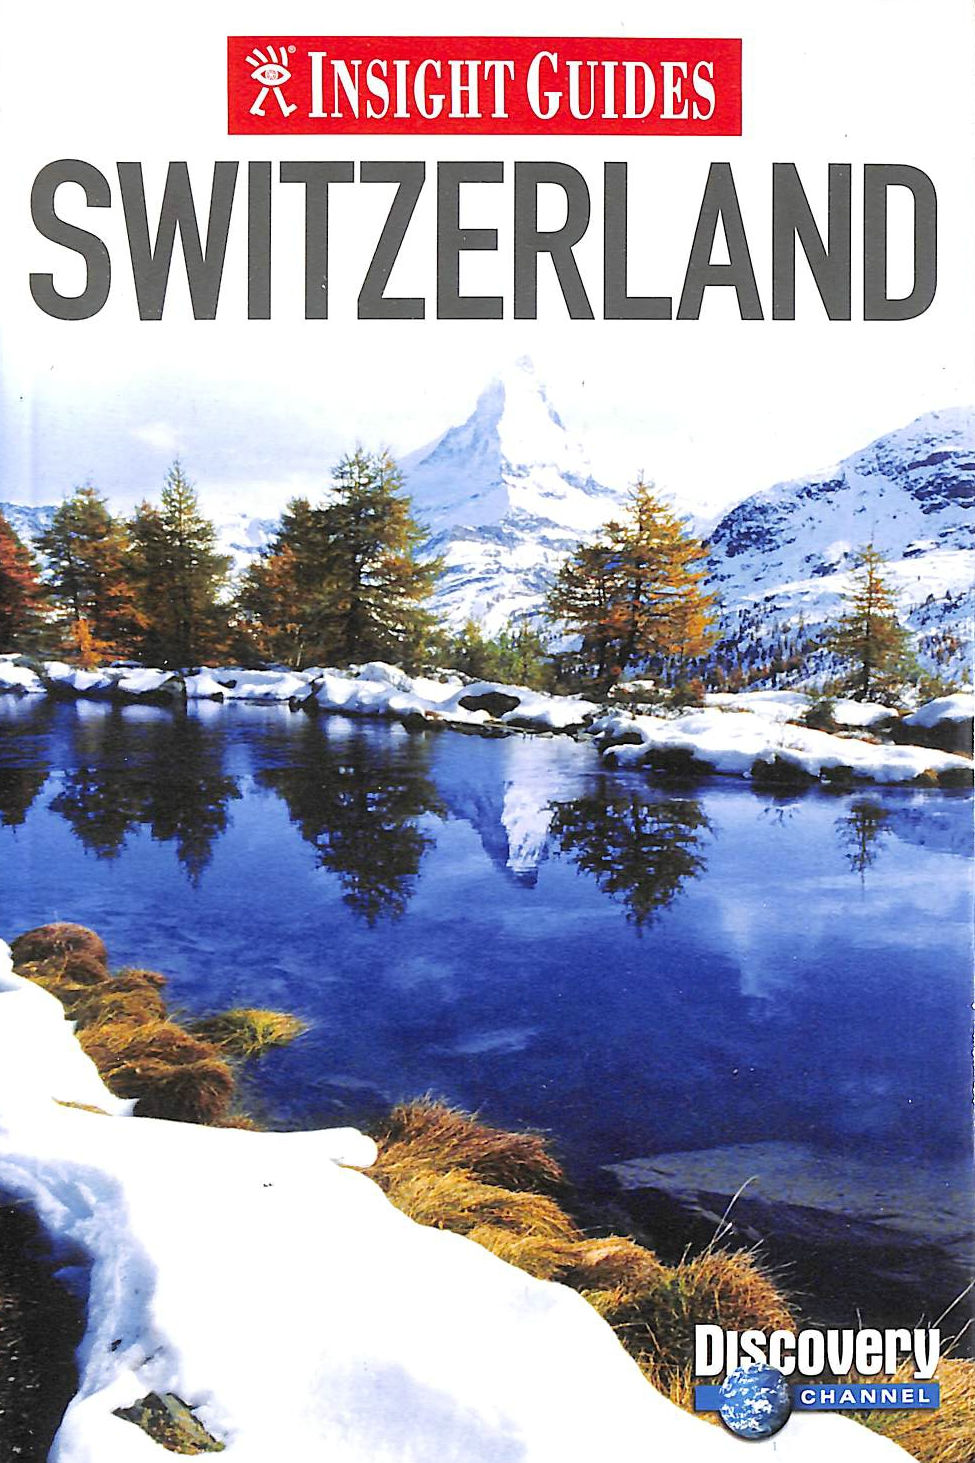 Image for Insight Guides: Switzerland